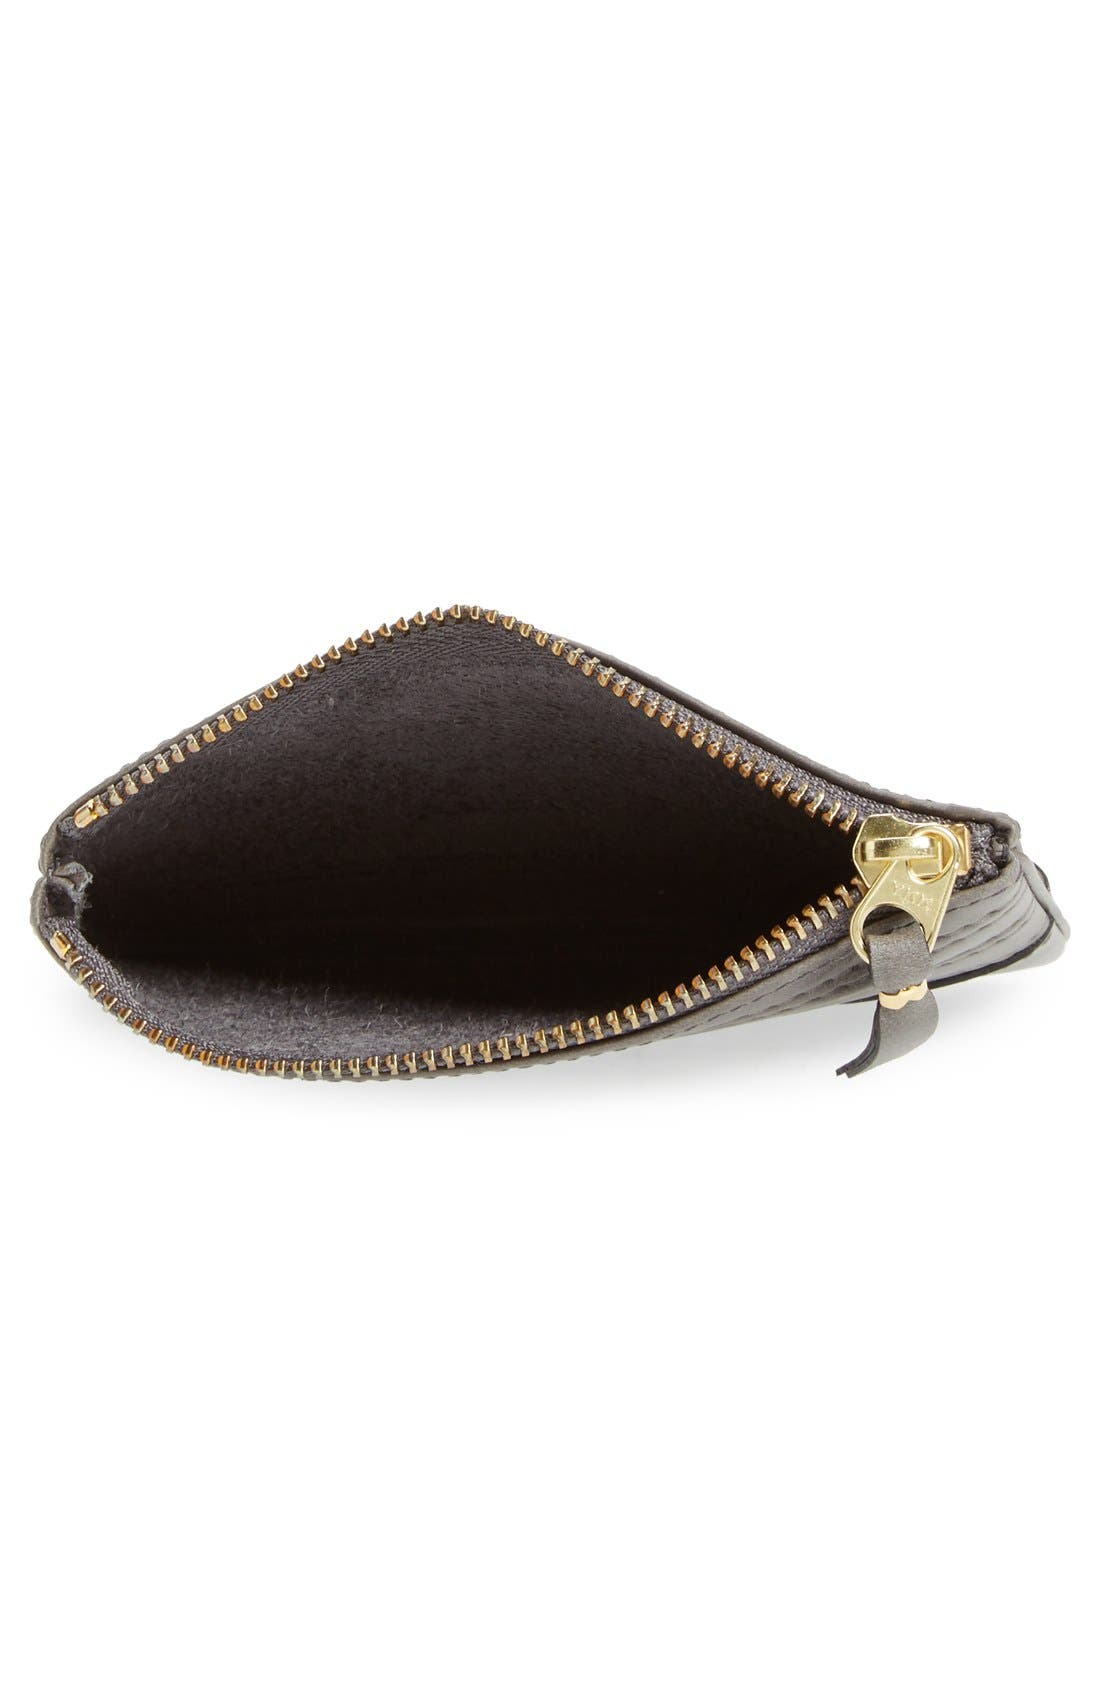 Embossed Leather Top Zip Pouch Wallet,                             Alternate thumbnail 8, color,